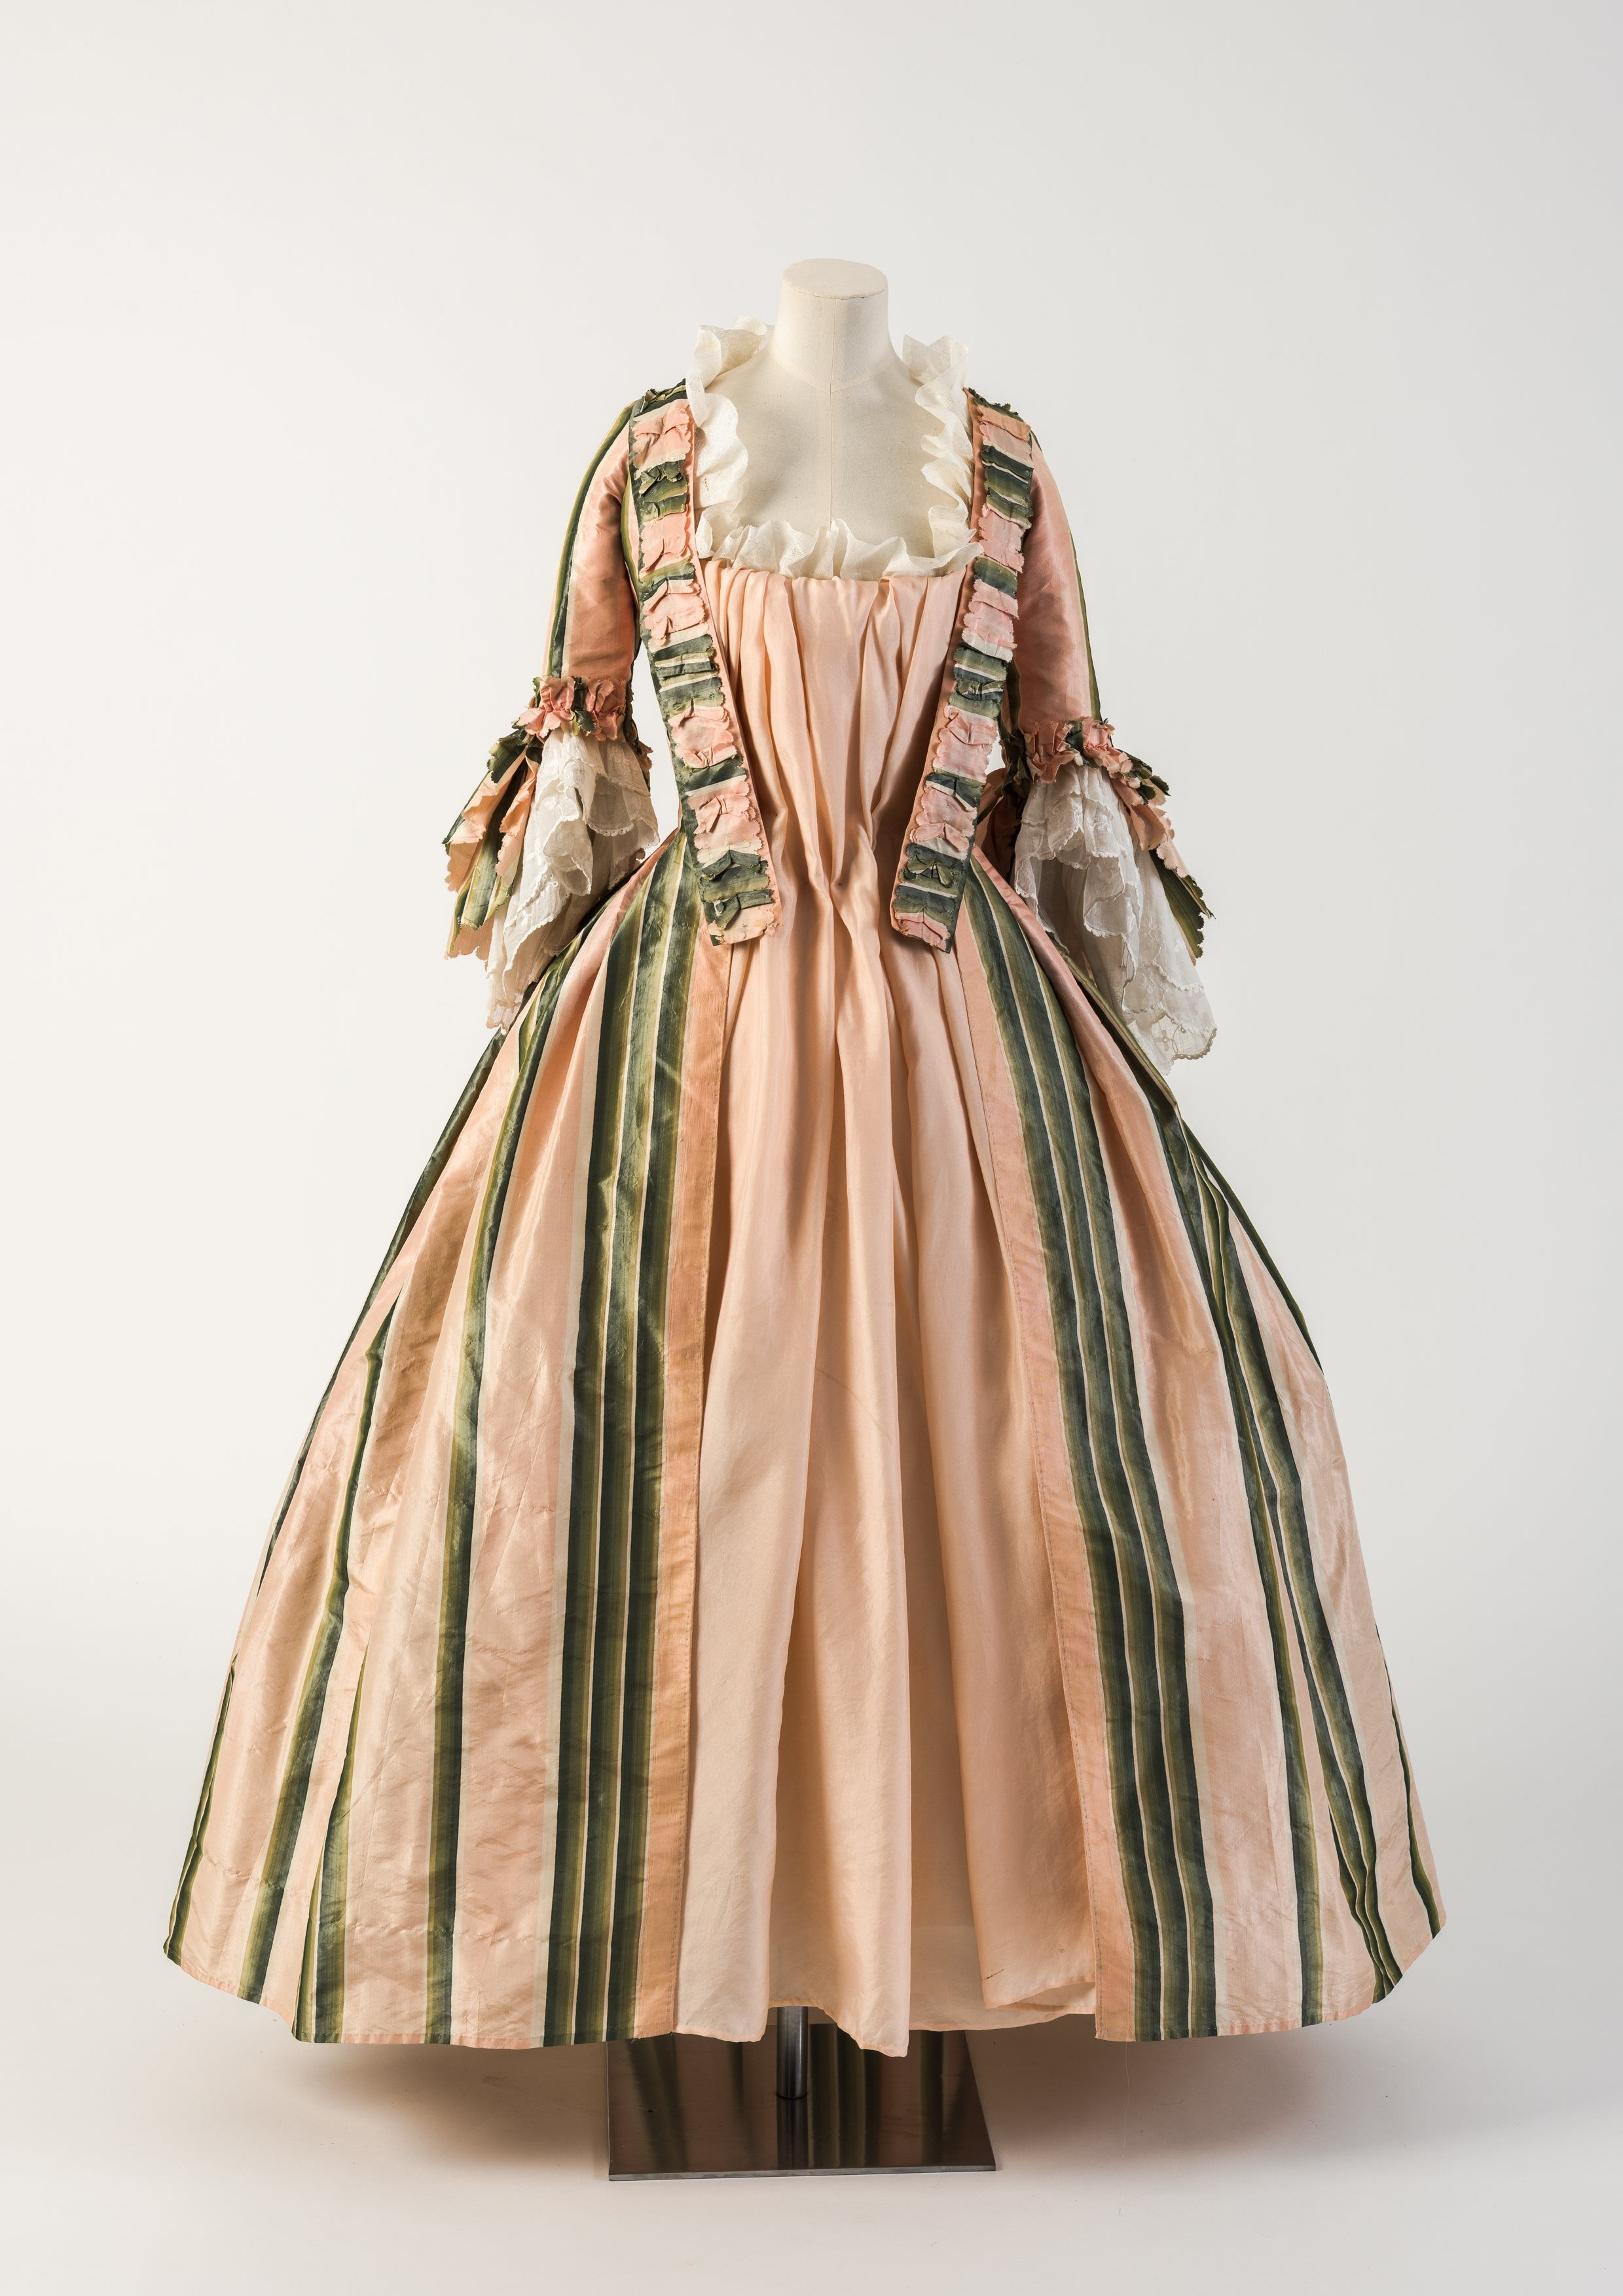 OBJECT 19   Pink and green striped silk robe a l anglaise  Fashion Museum  Bath OBJECT 19   Pink and green striped silk robe a l anglaise  1770s  . Bath Fashion Museum Gift Shop. Home Design Ideas